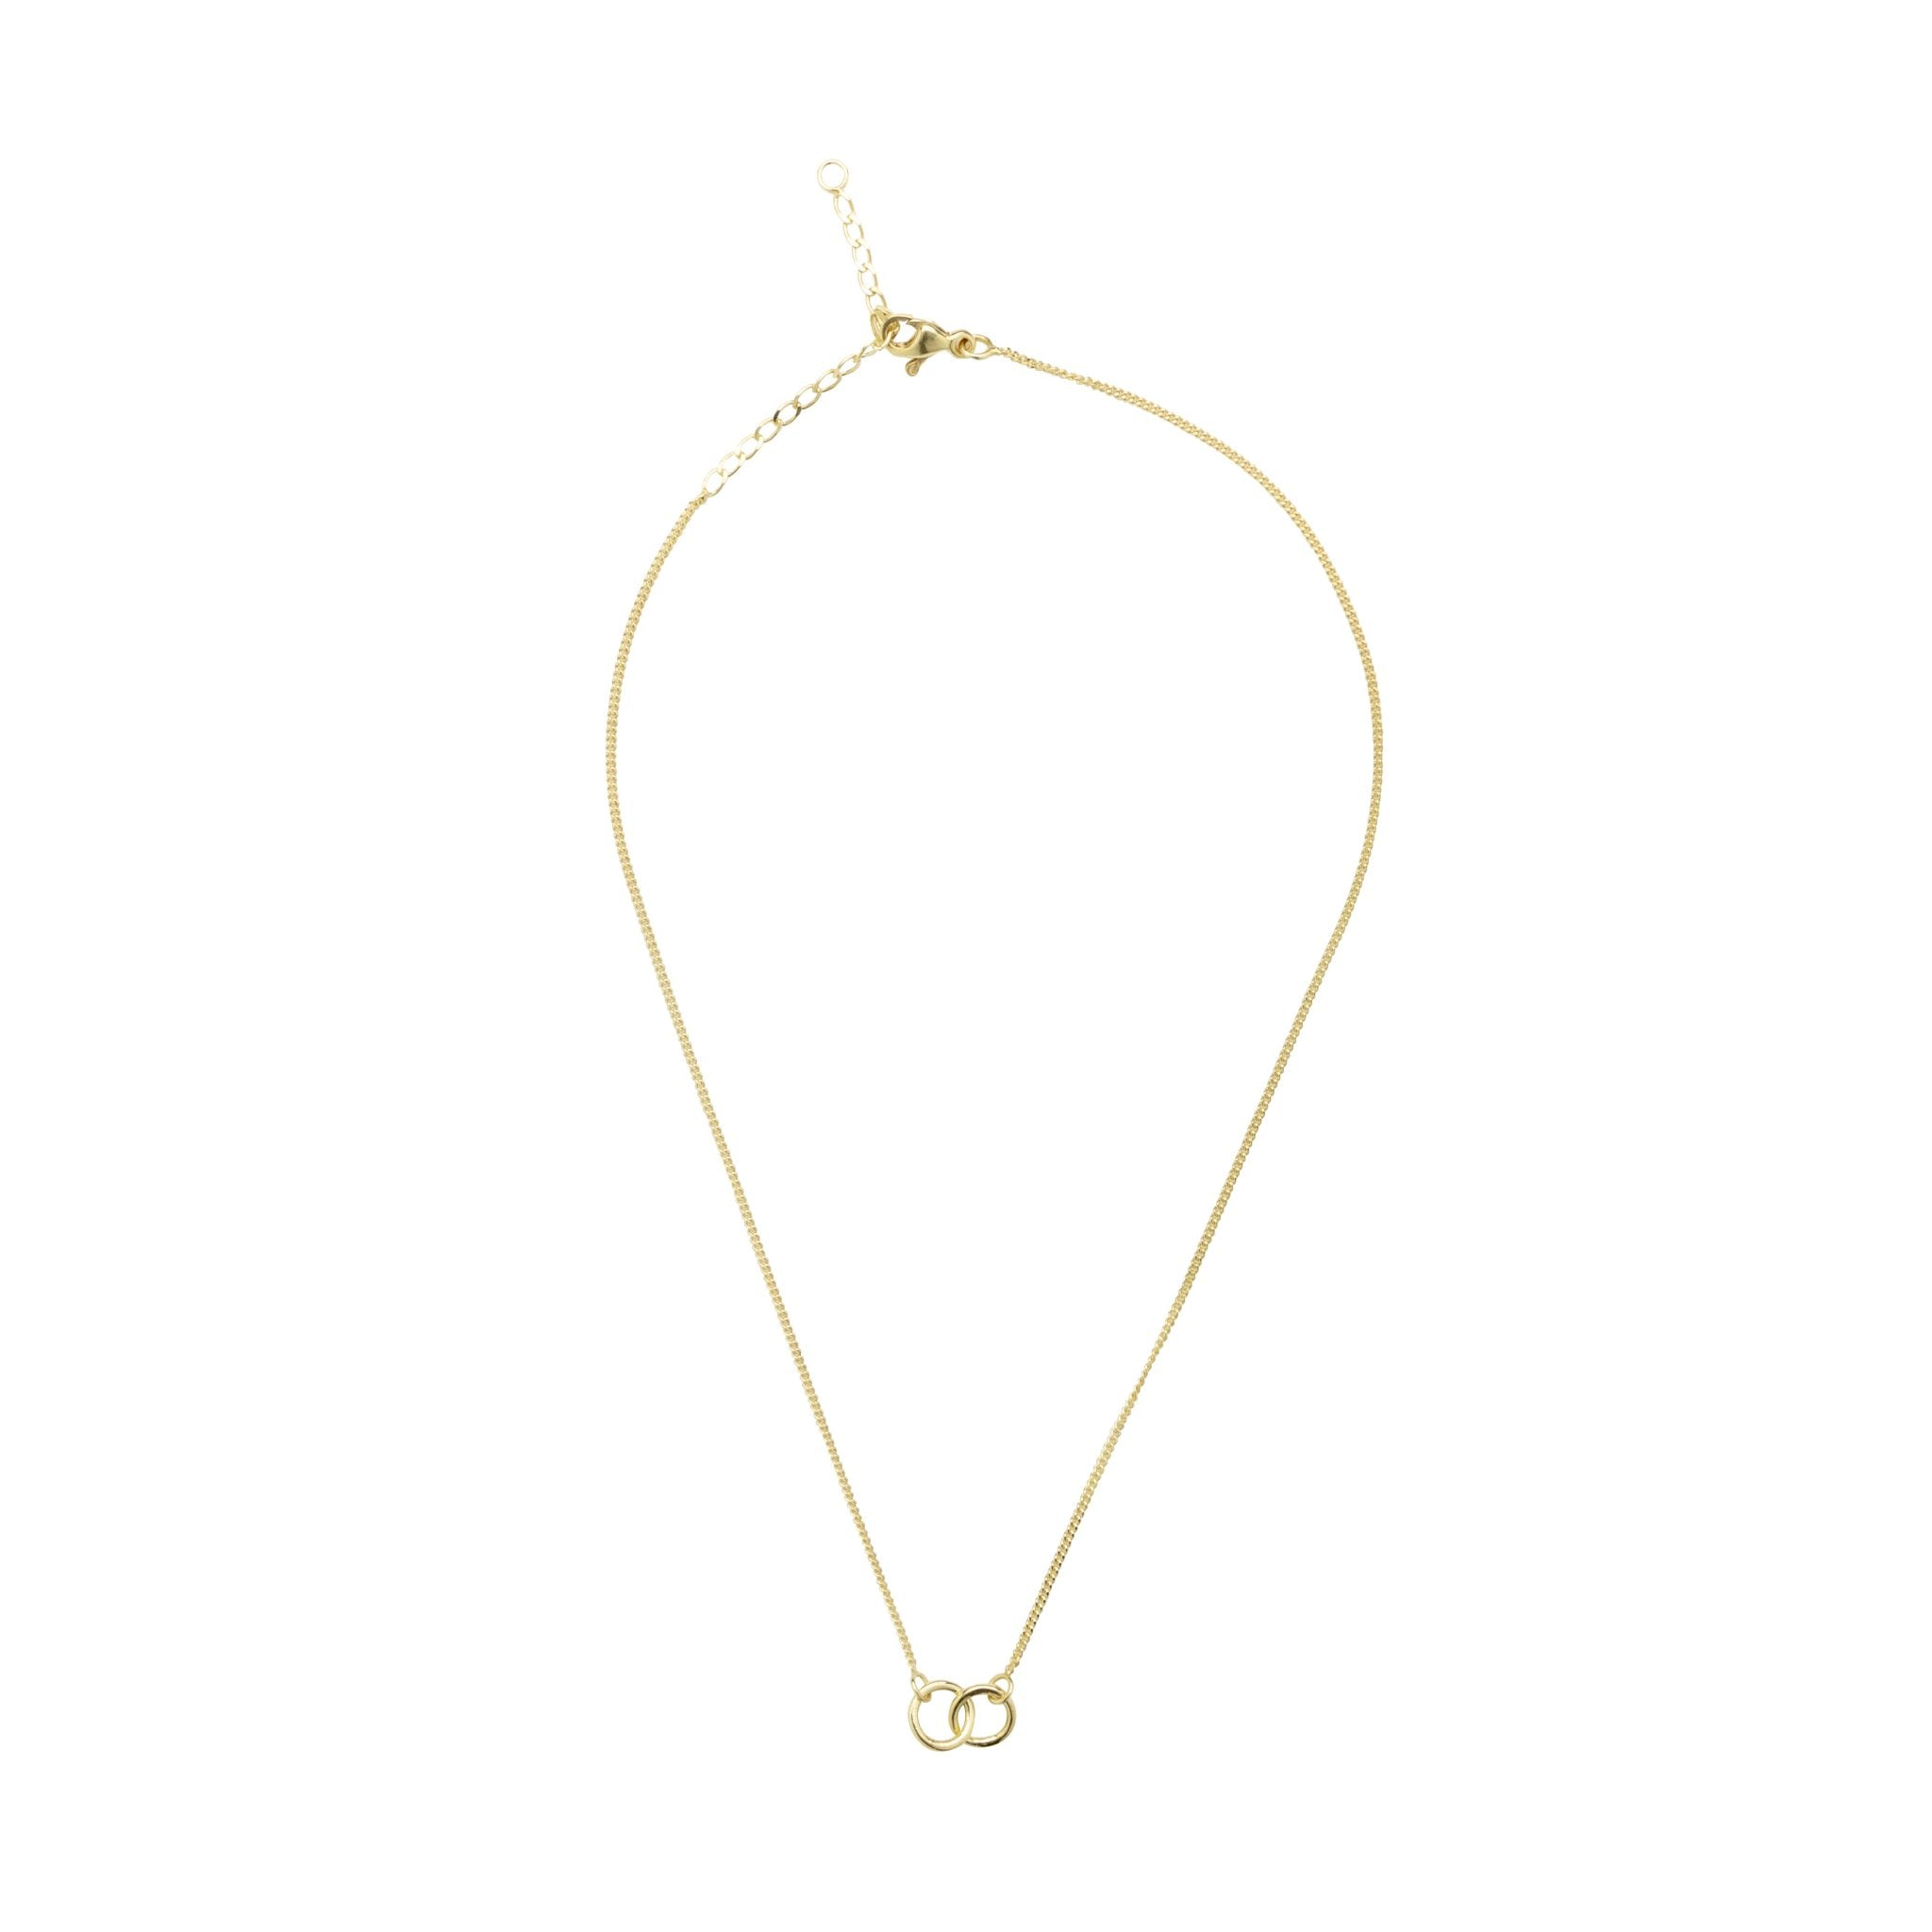 Eternal Connection 14KT Solid Gold Necklace (Small)